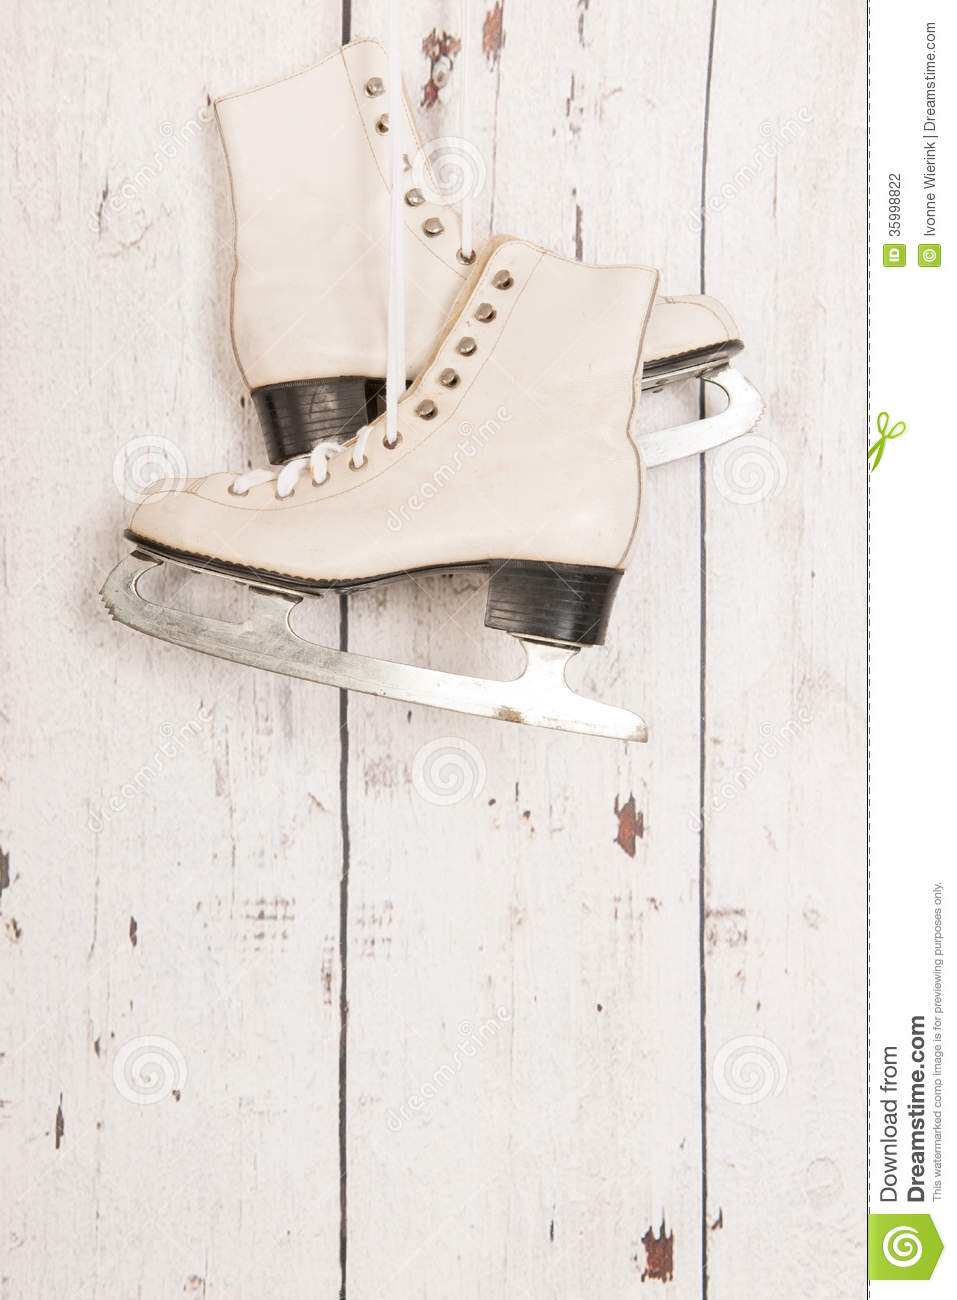 Hanging Ice Skates On Wooden Wall Stock Photo - Image ...